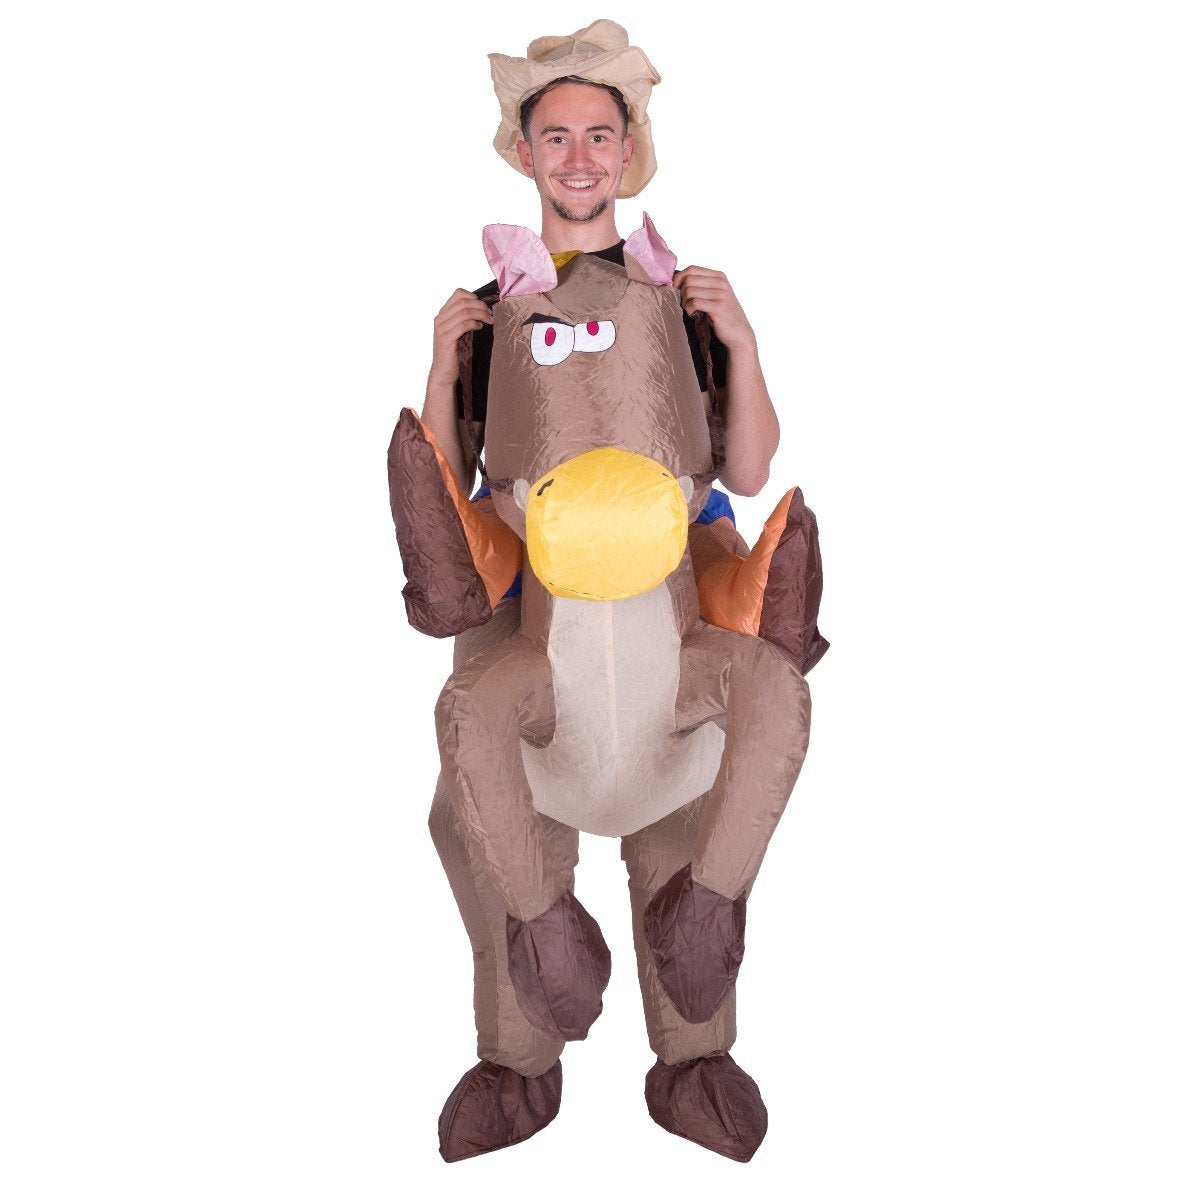 Bodysocks - Inflatable Cowboy Costume